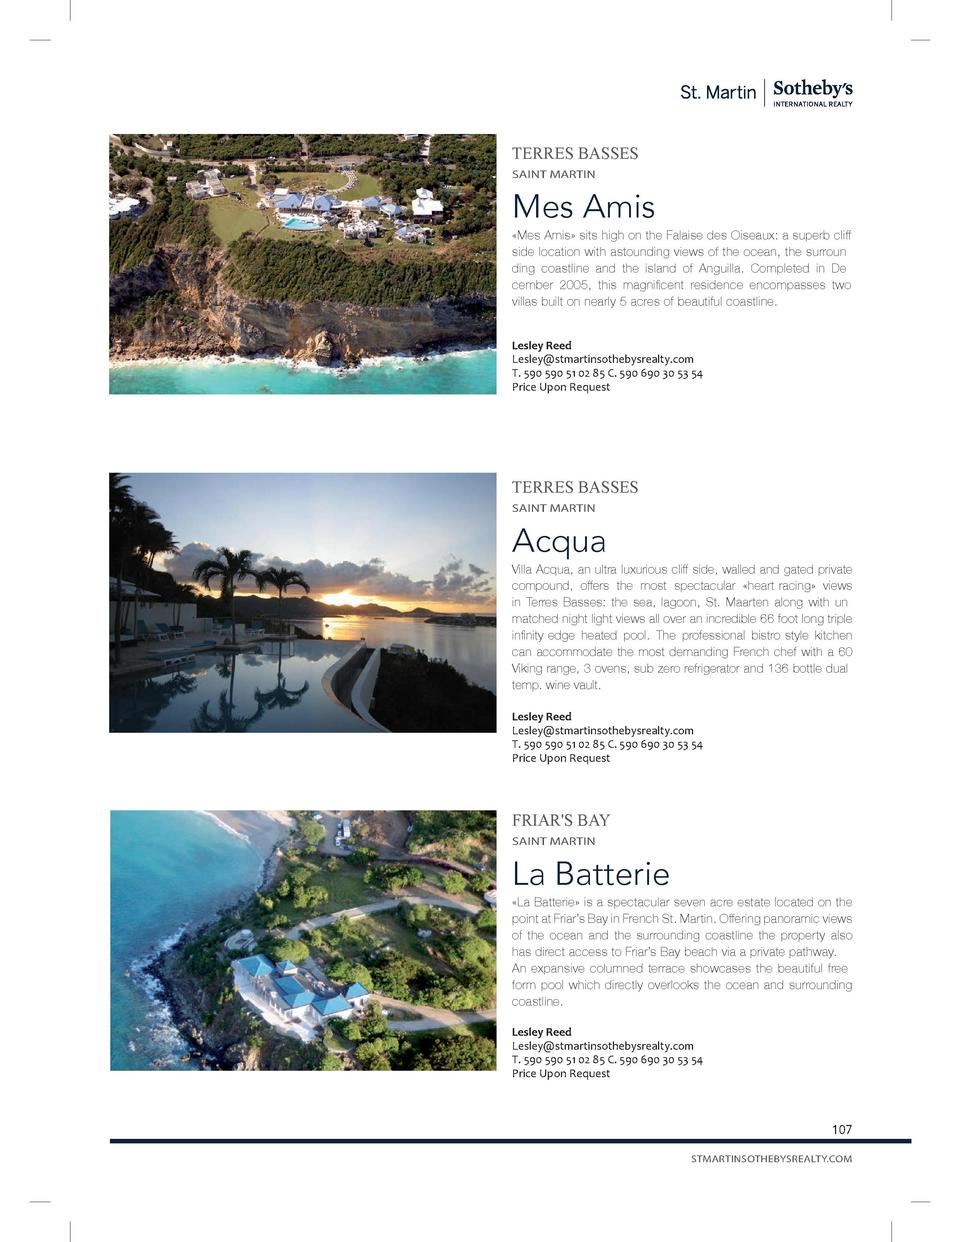 TERRES BASSES SAINT MARTIN  Mes Amis    Mes Amis   sits high on the Falaise des Oiseaux  a superb cliff side location with...